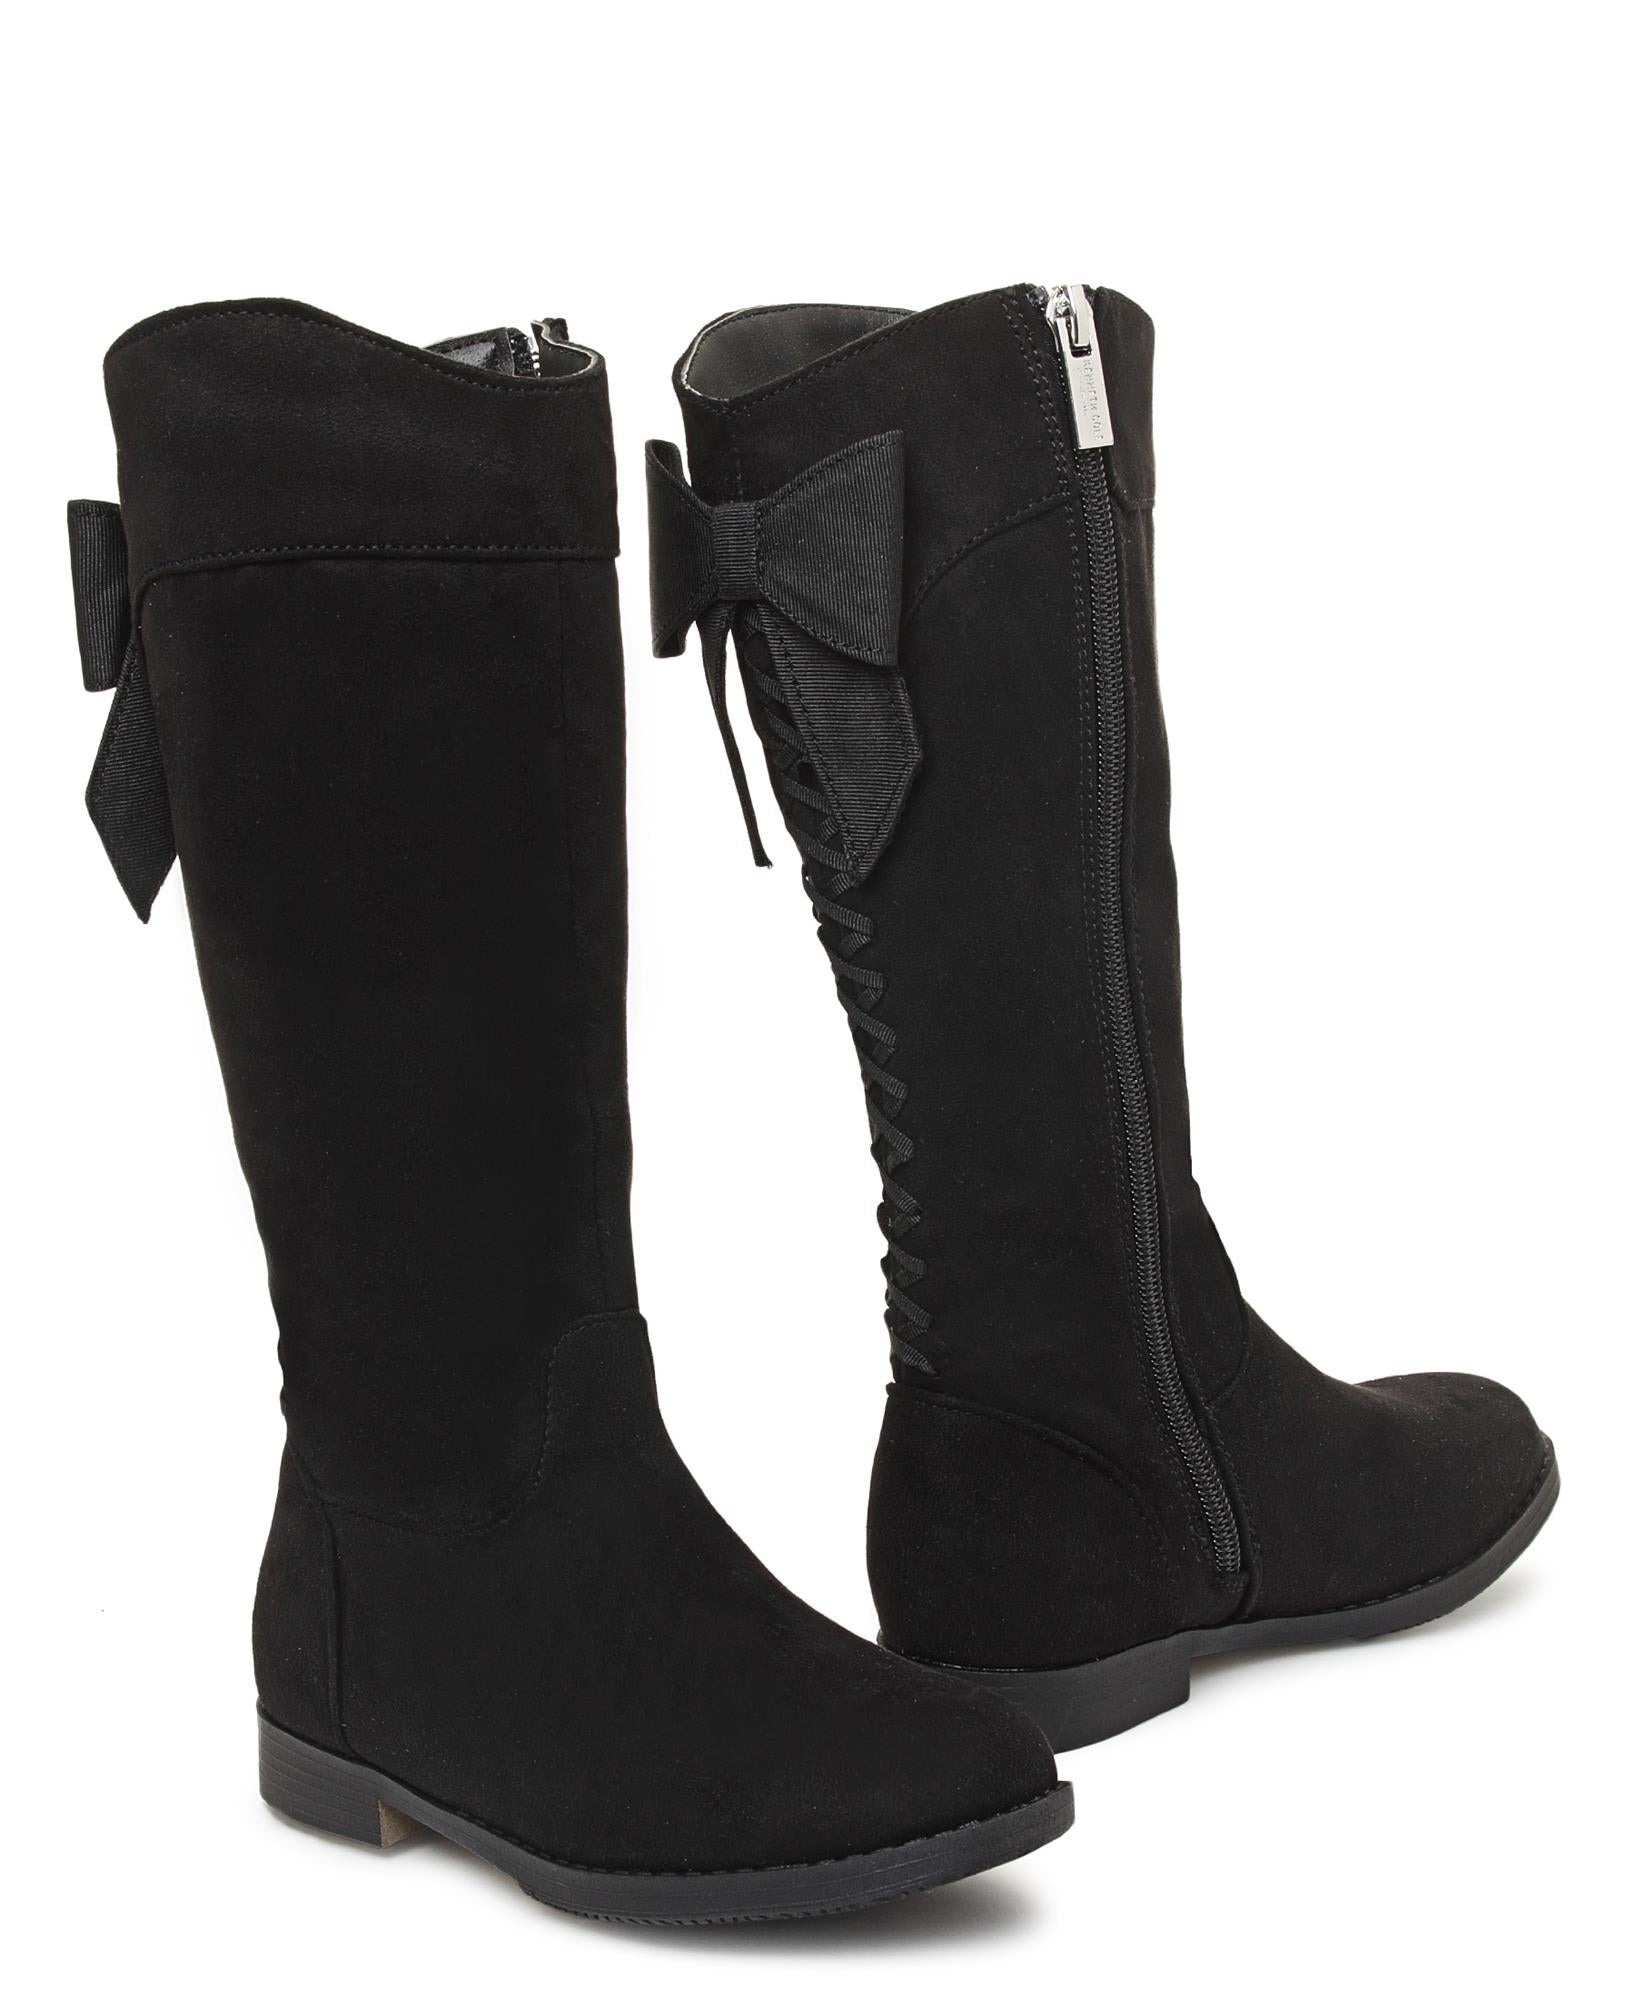 Girls Knee High Boots - Black